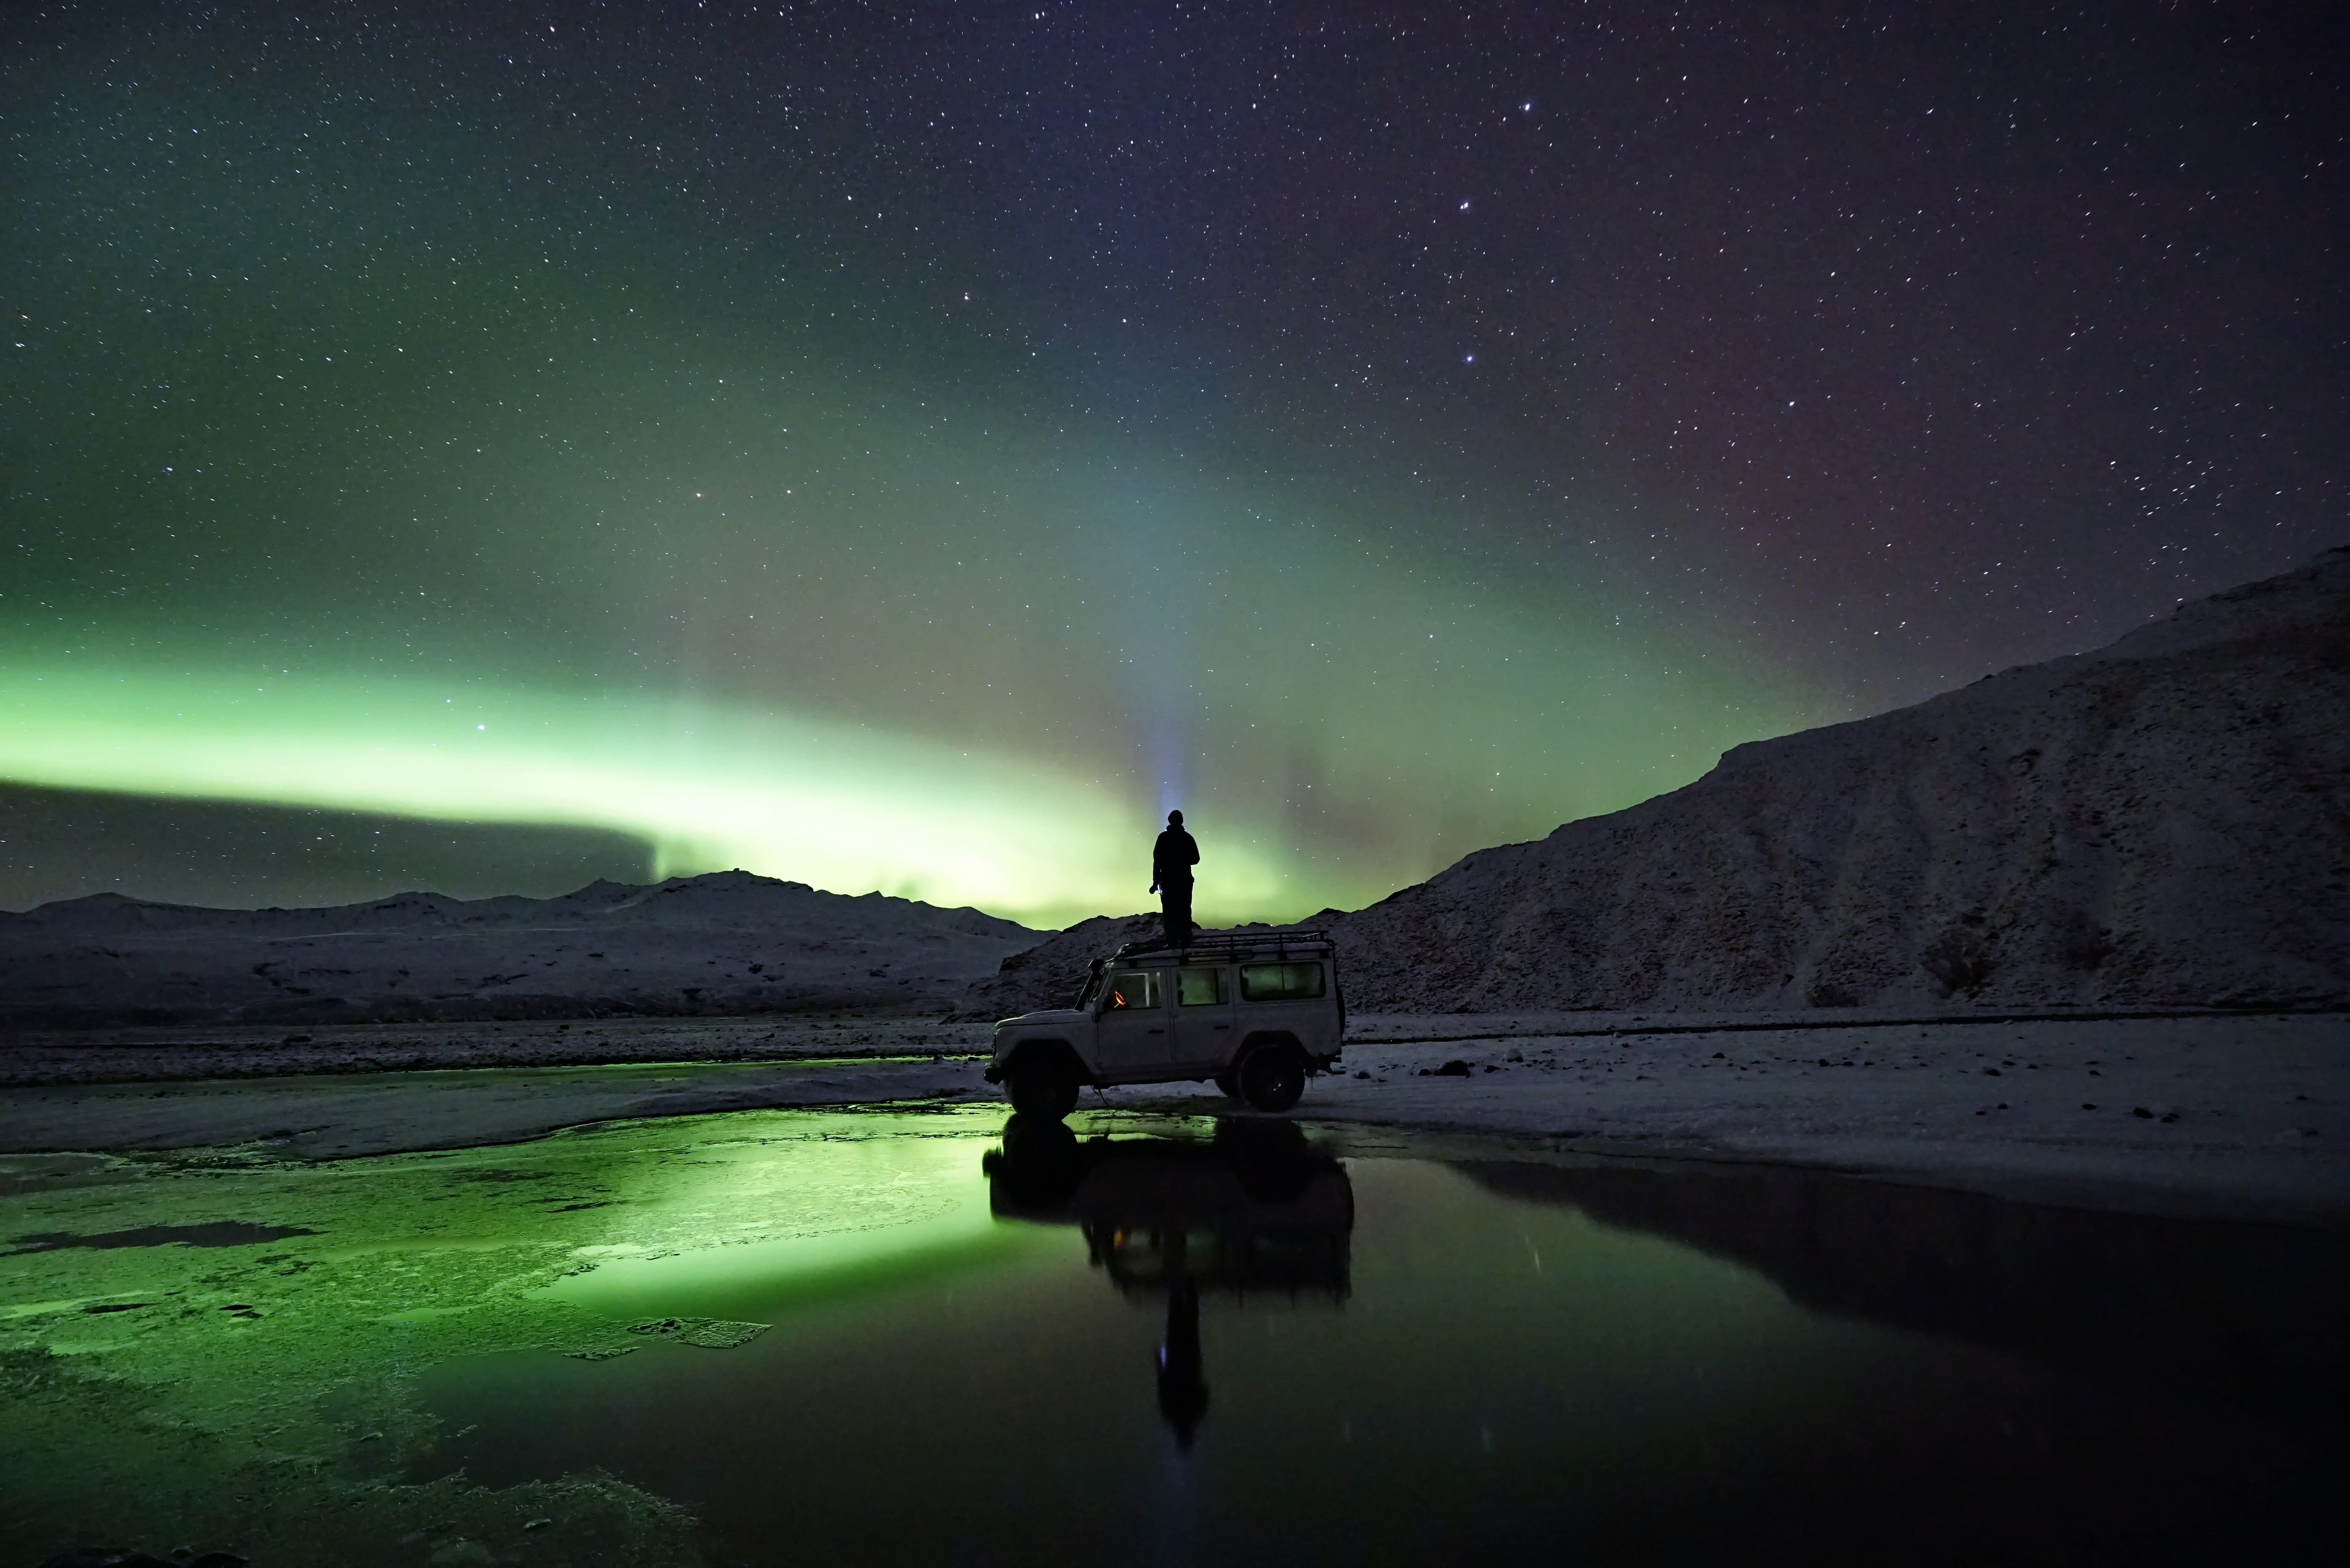 man standing on SUV watching northern lights